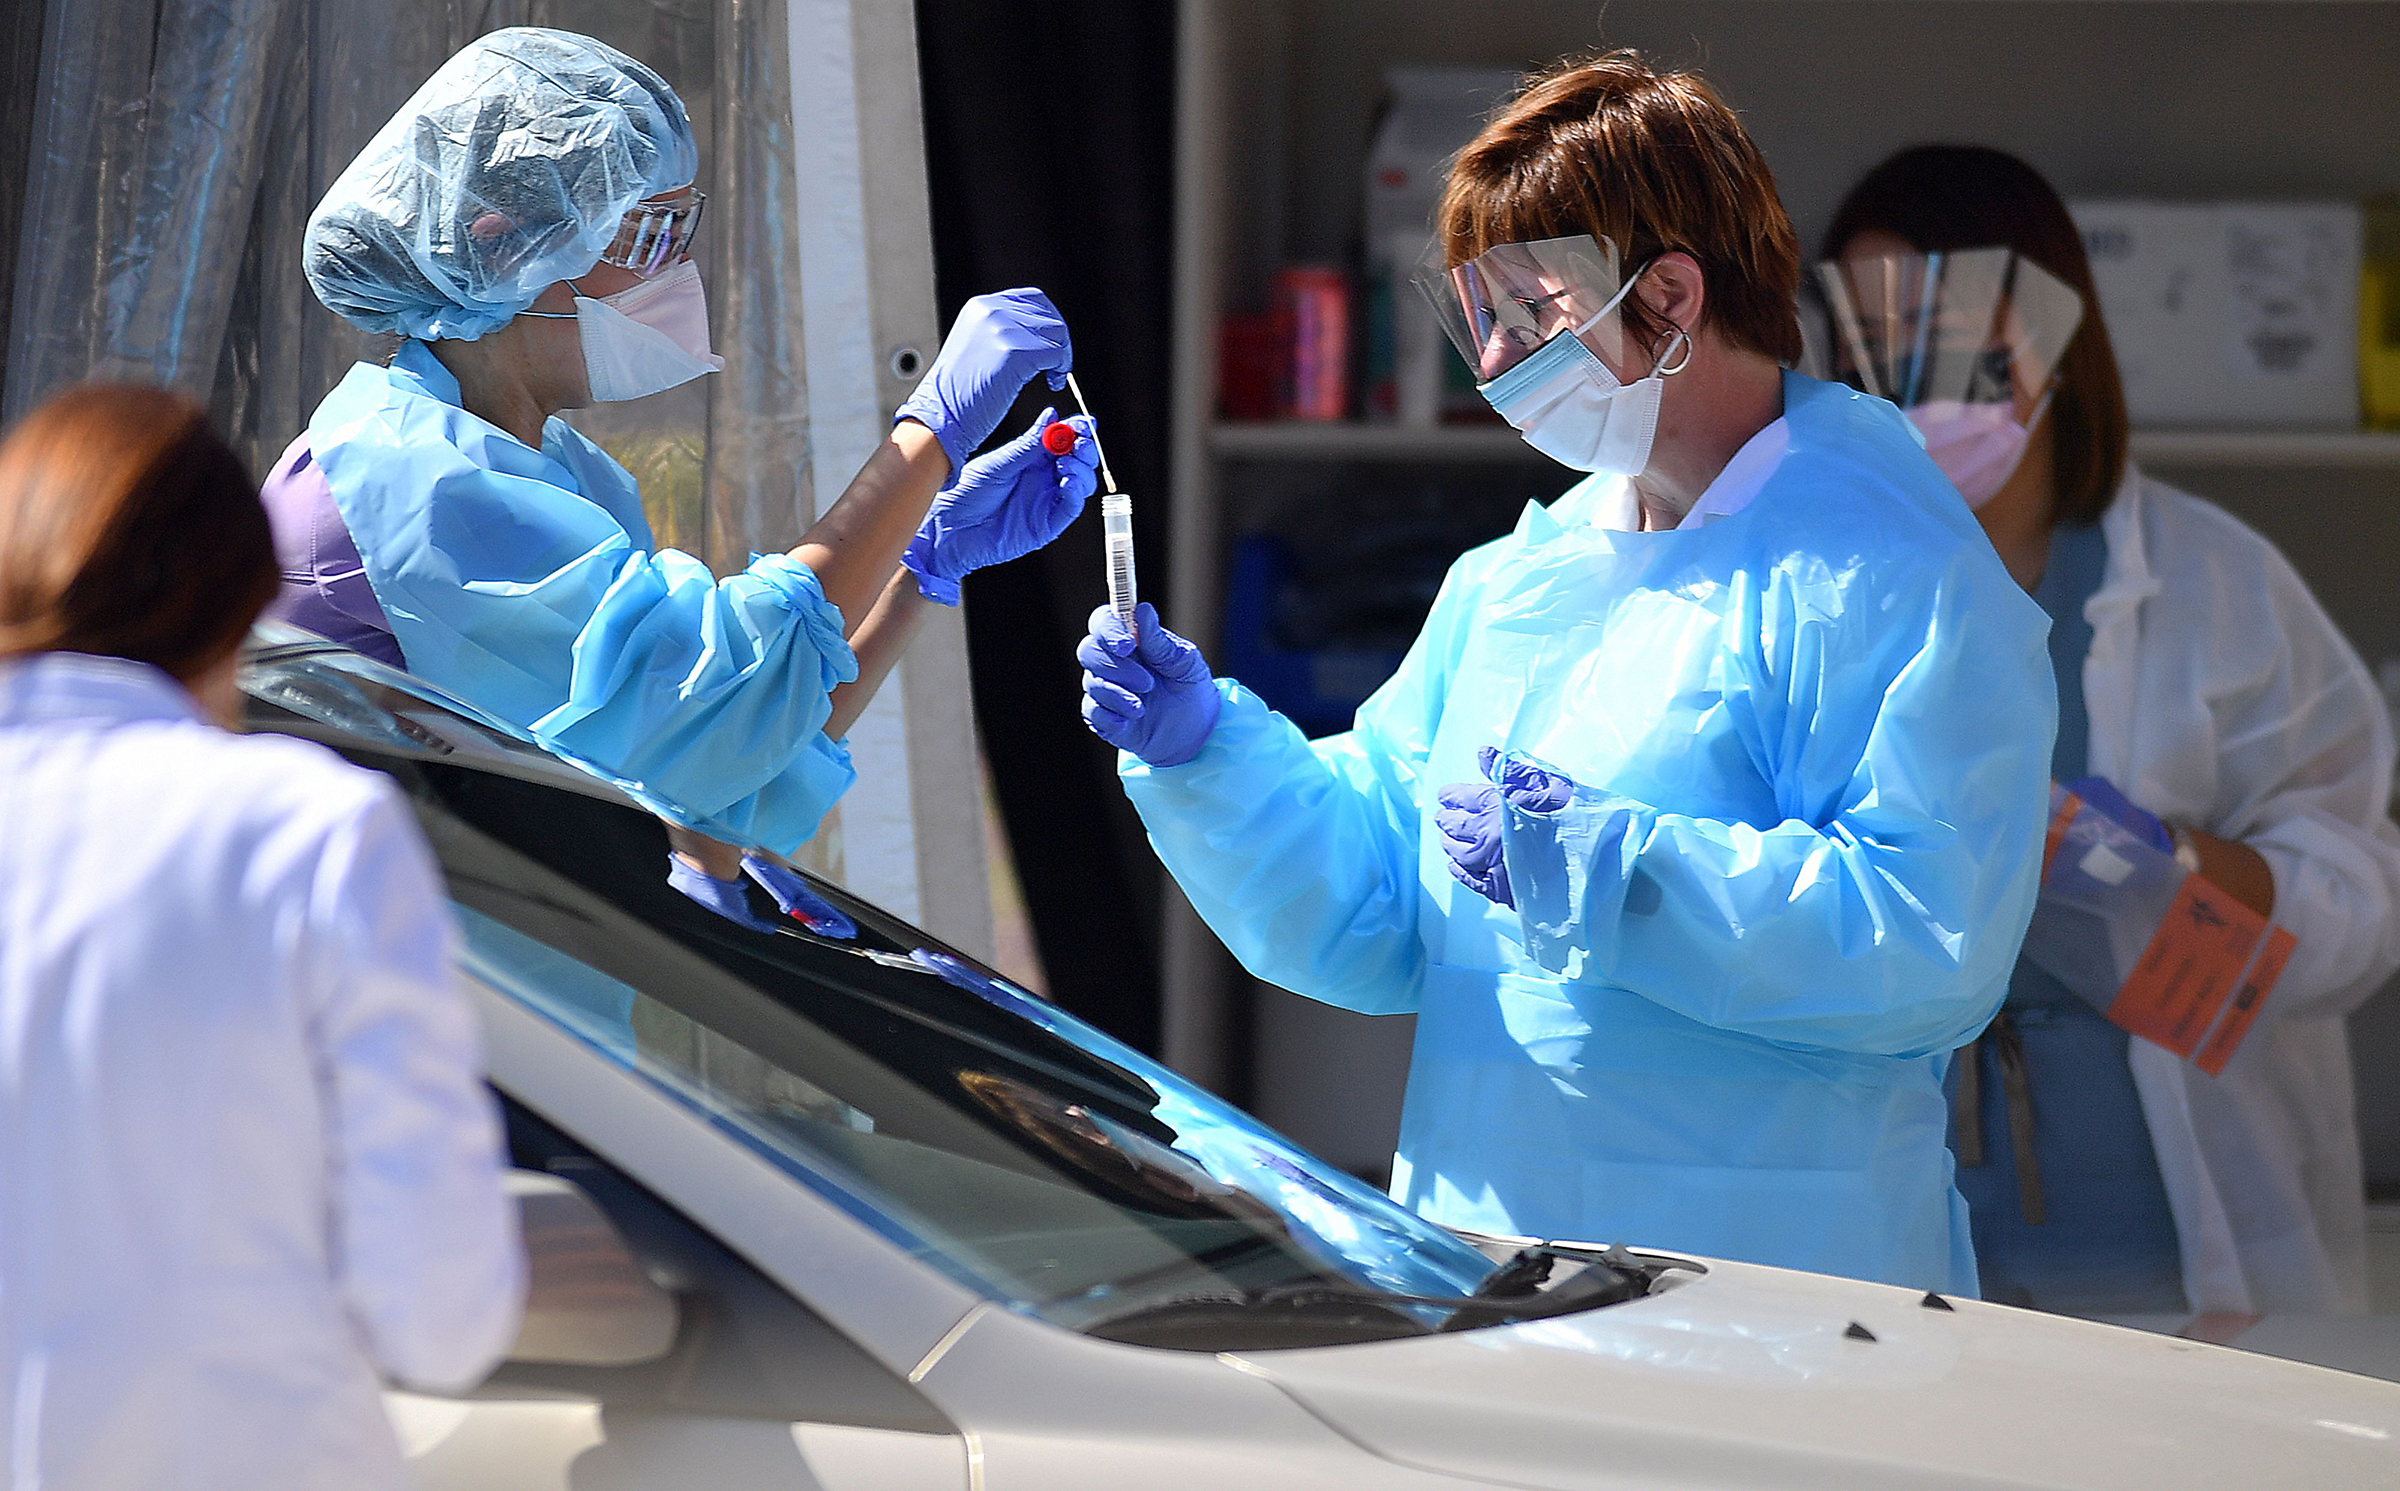 Medical workers test a patient for the novel coronavirus, COVID-19, at a drive-thru testing facility in San Francisco, California on March 12, 2020.